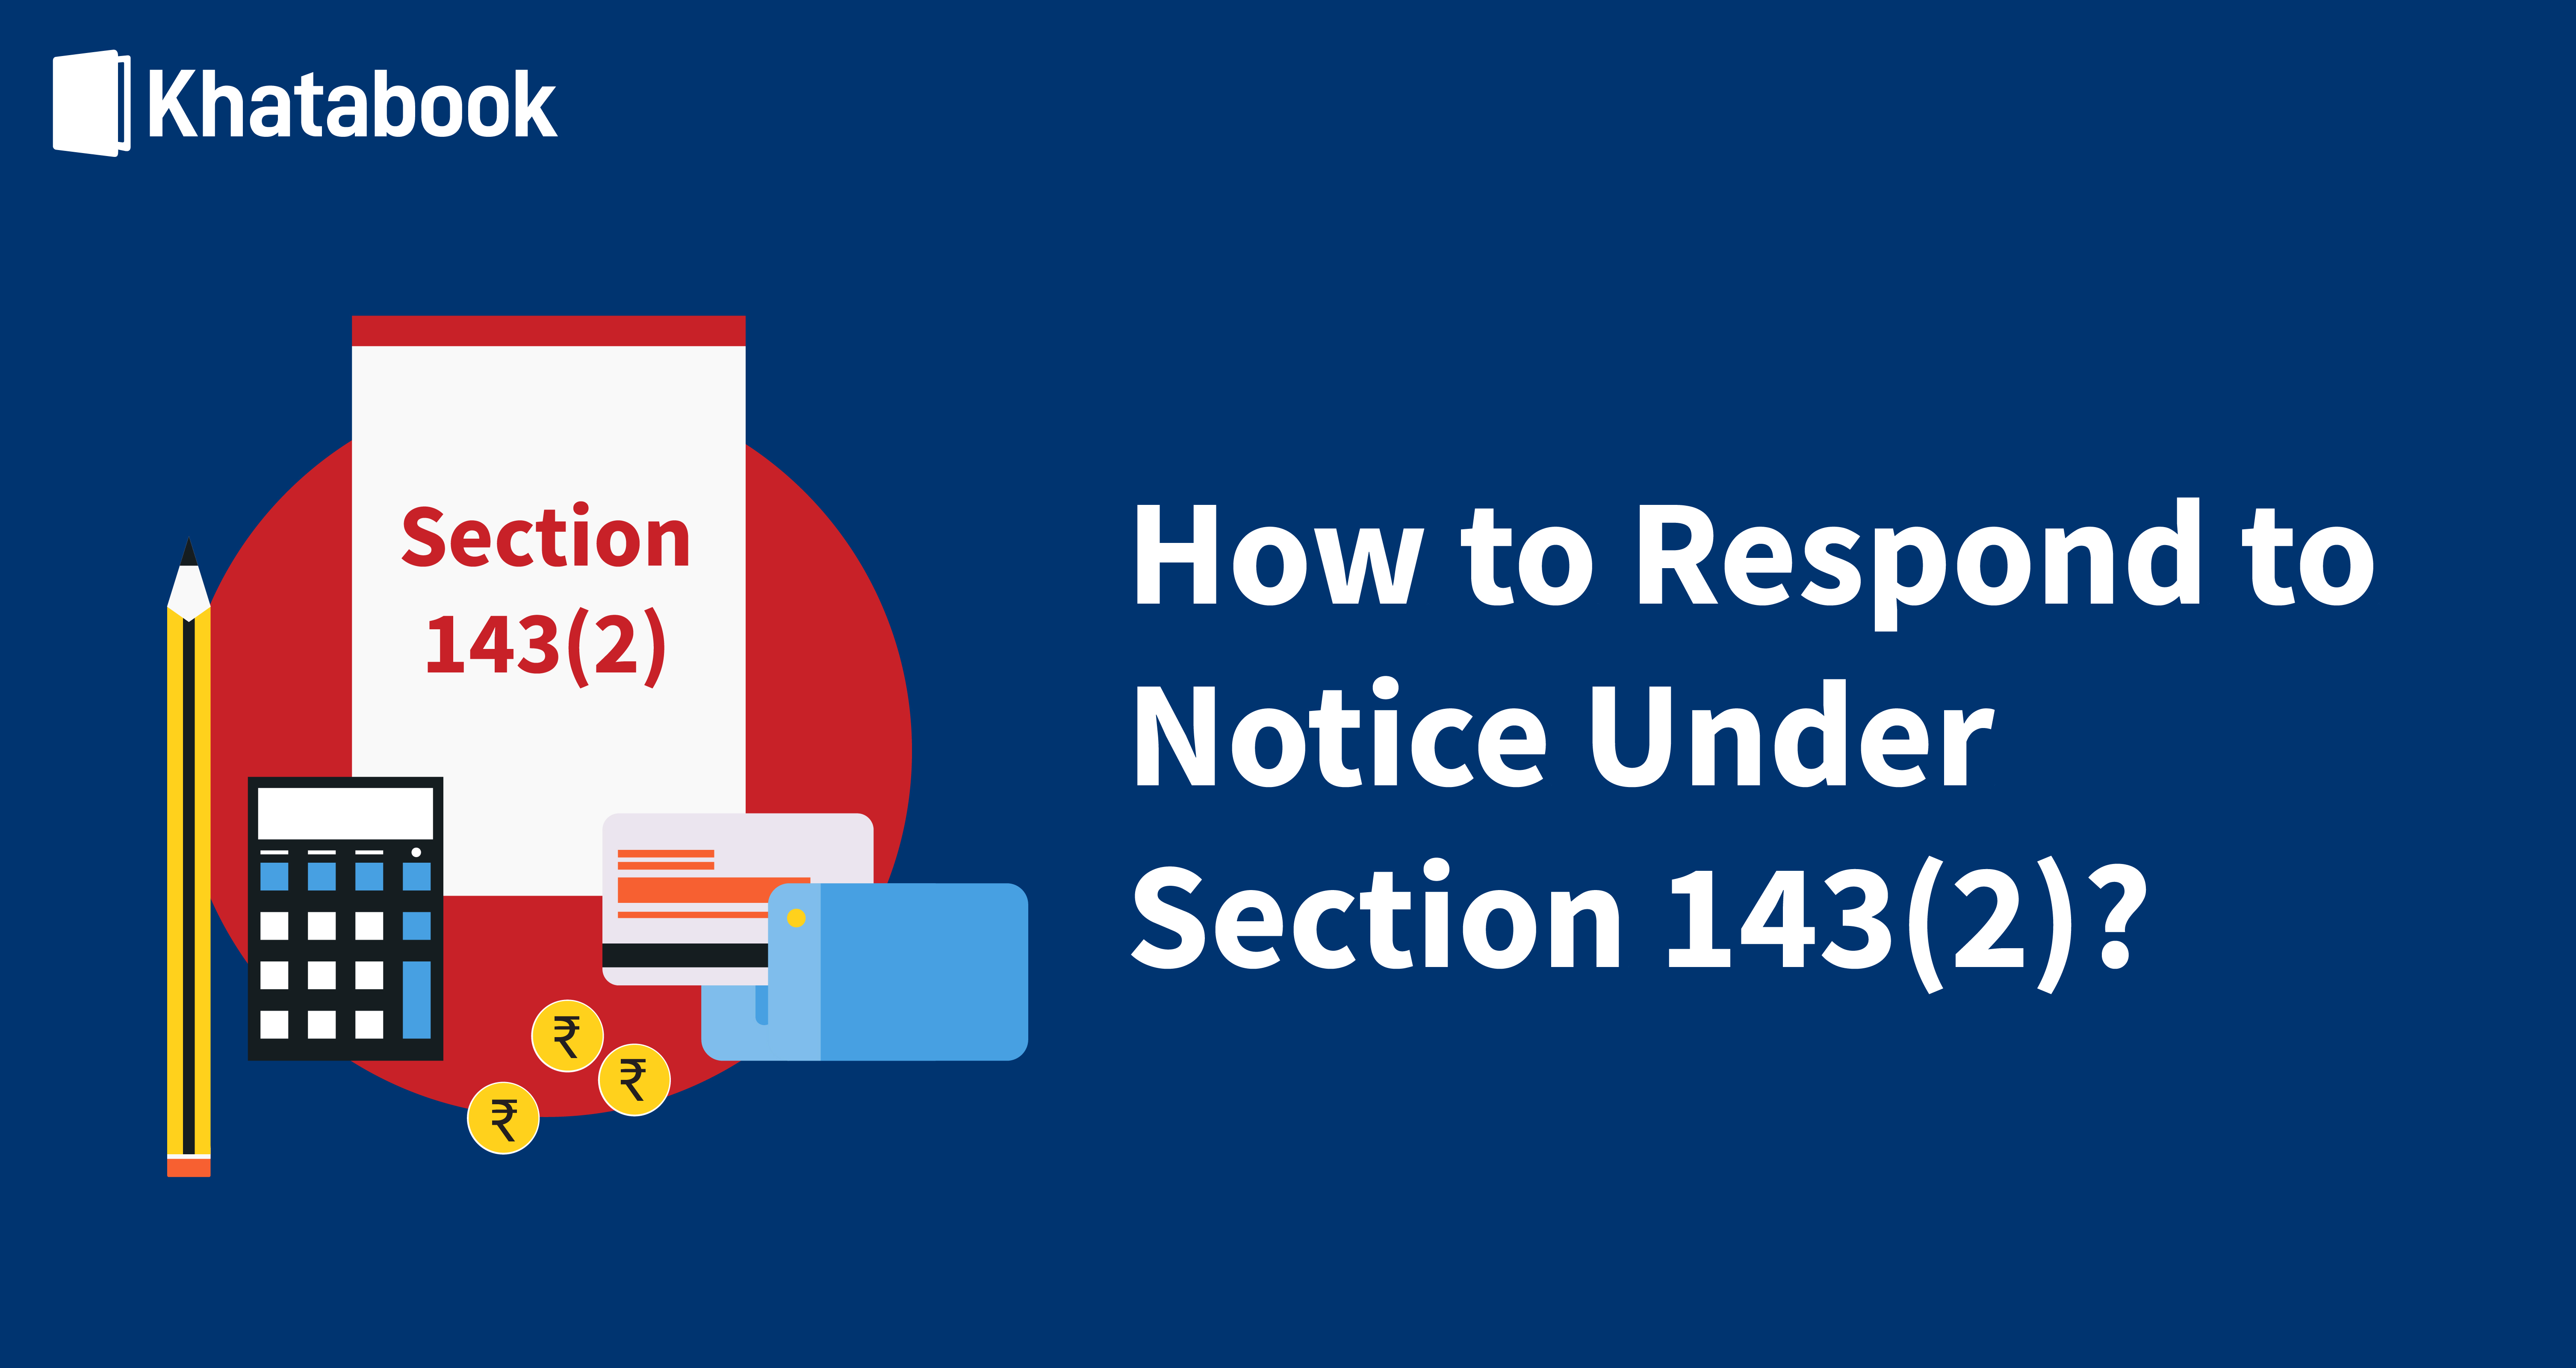 How to Respond to Notice Under Section 143(2)